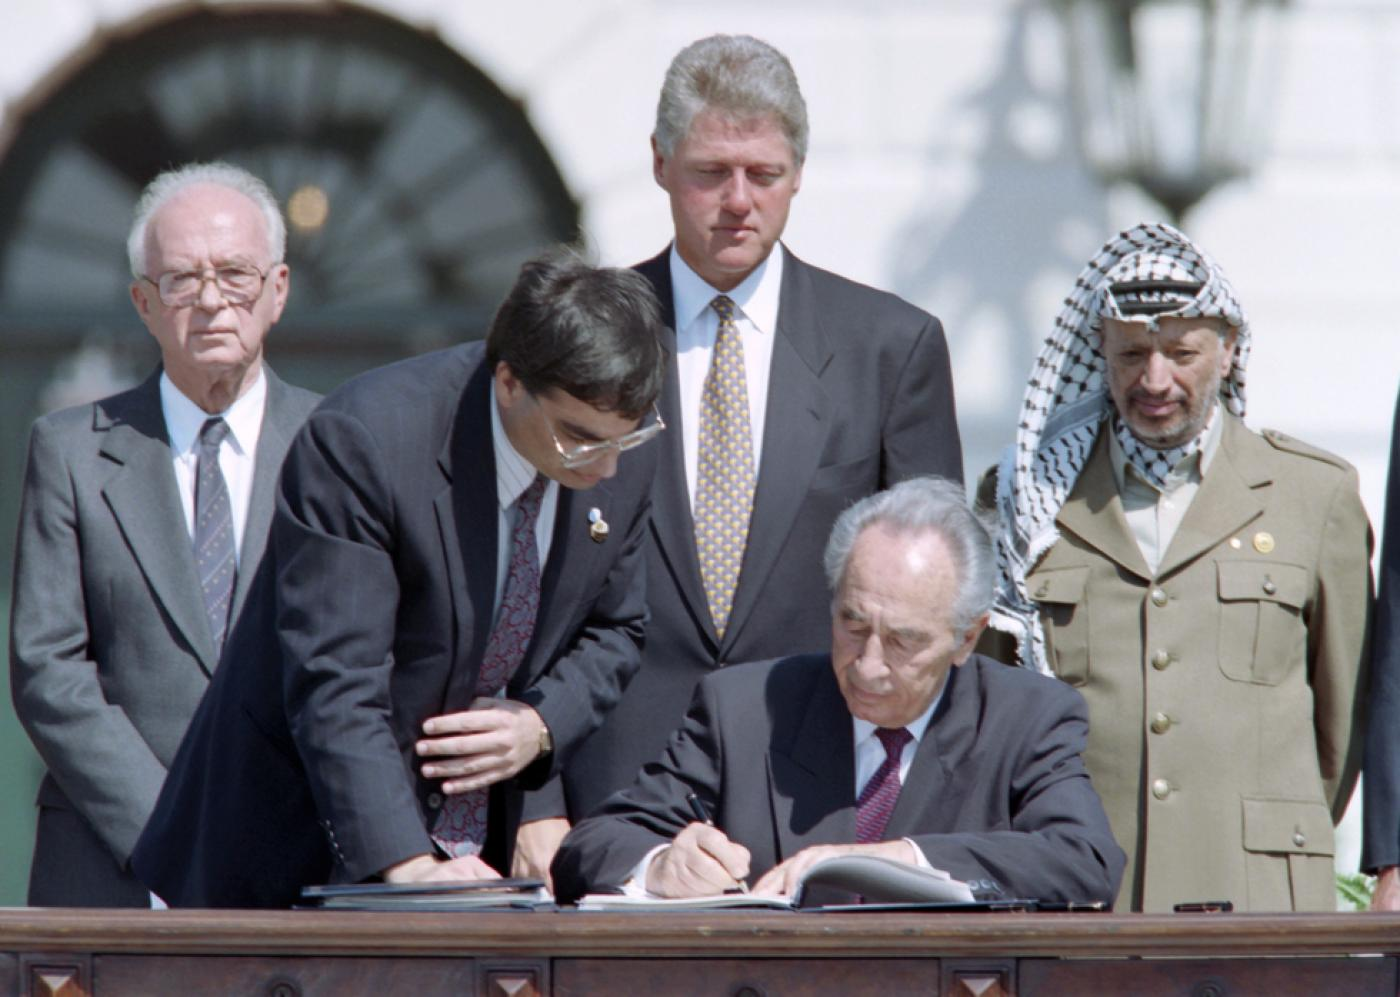 Israeli President Shimon Peres signs the Israel-PLO Oslo accords, 1993